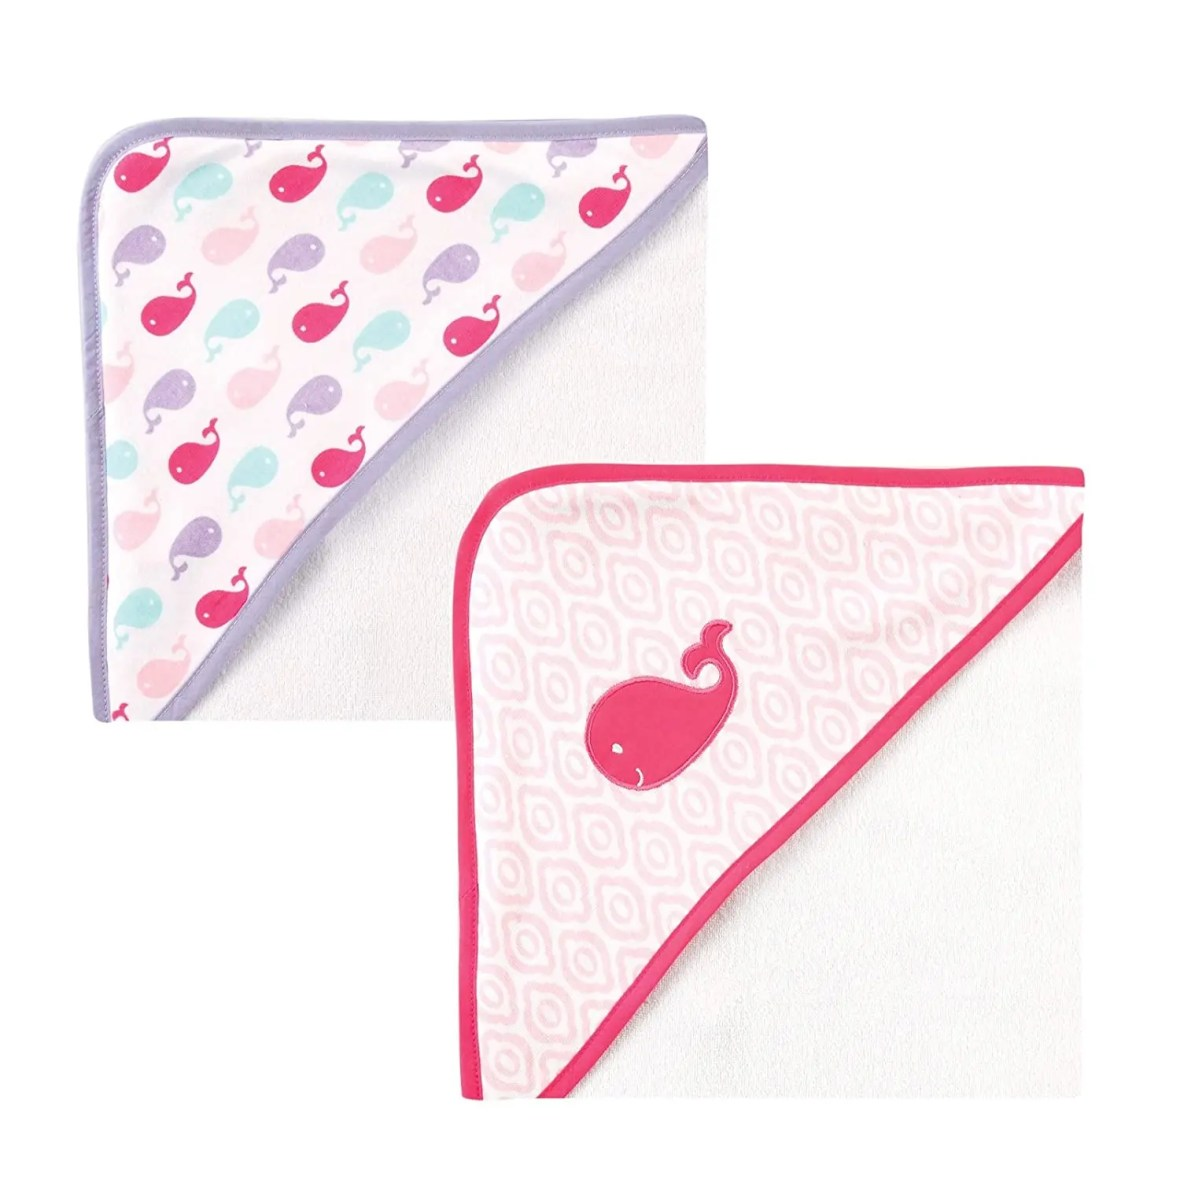 Luvable Friends Unisex Baby Cotton Terry Hooded Towels, Pink Whale 2 Pack